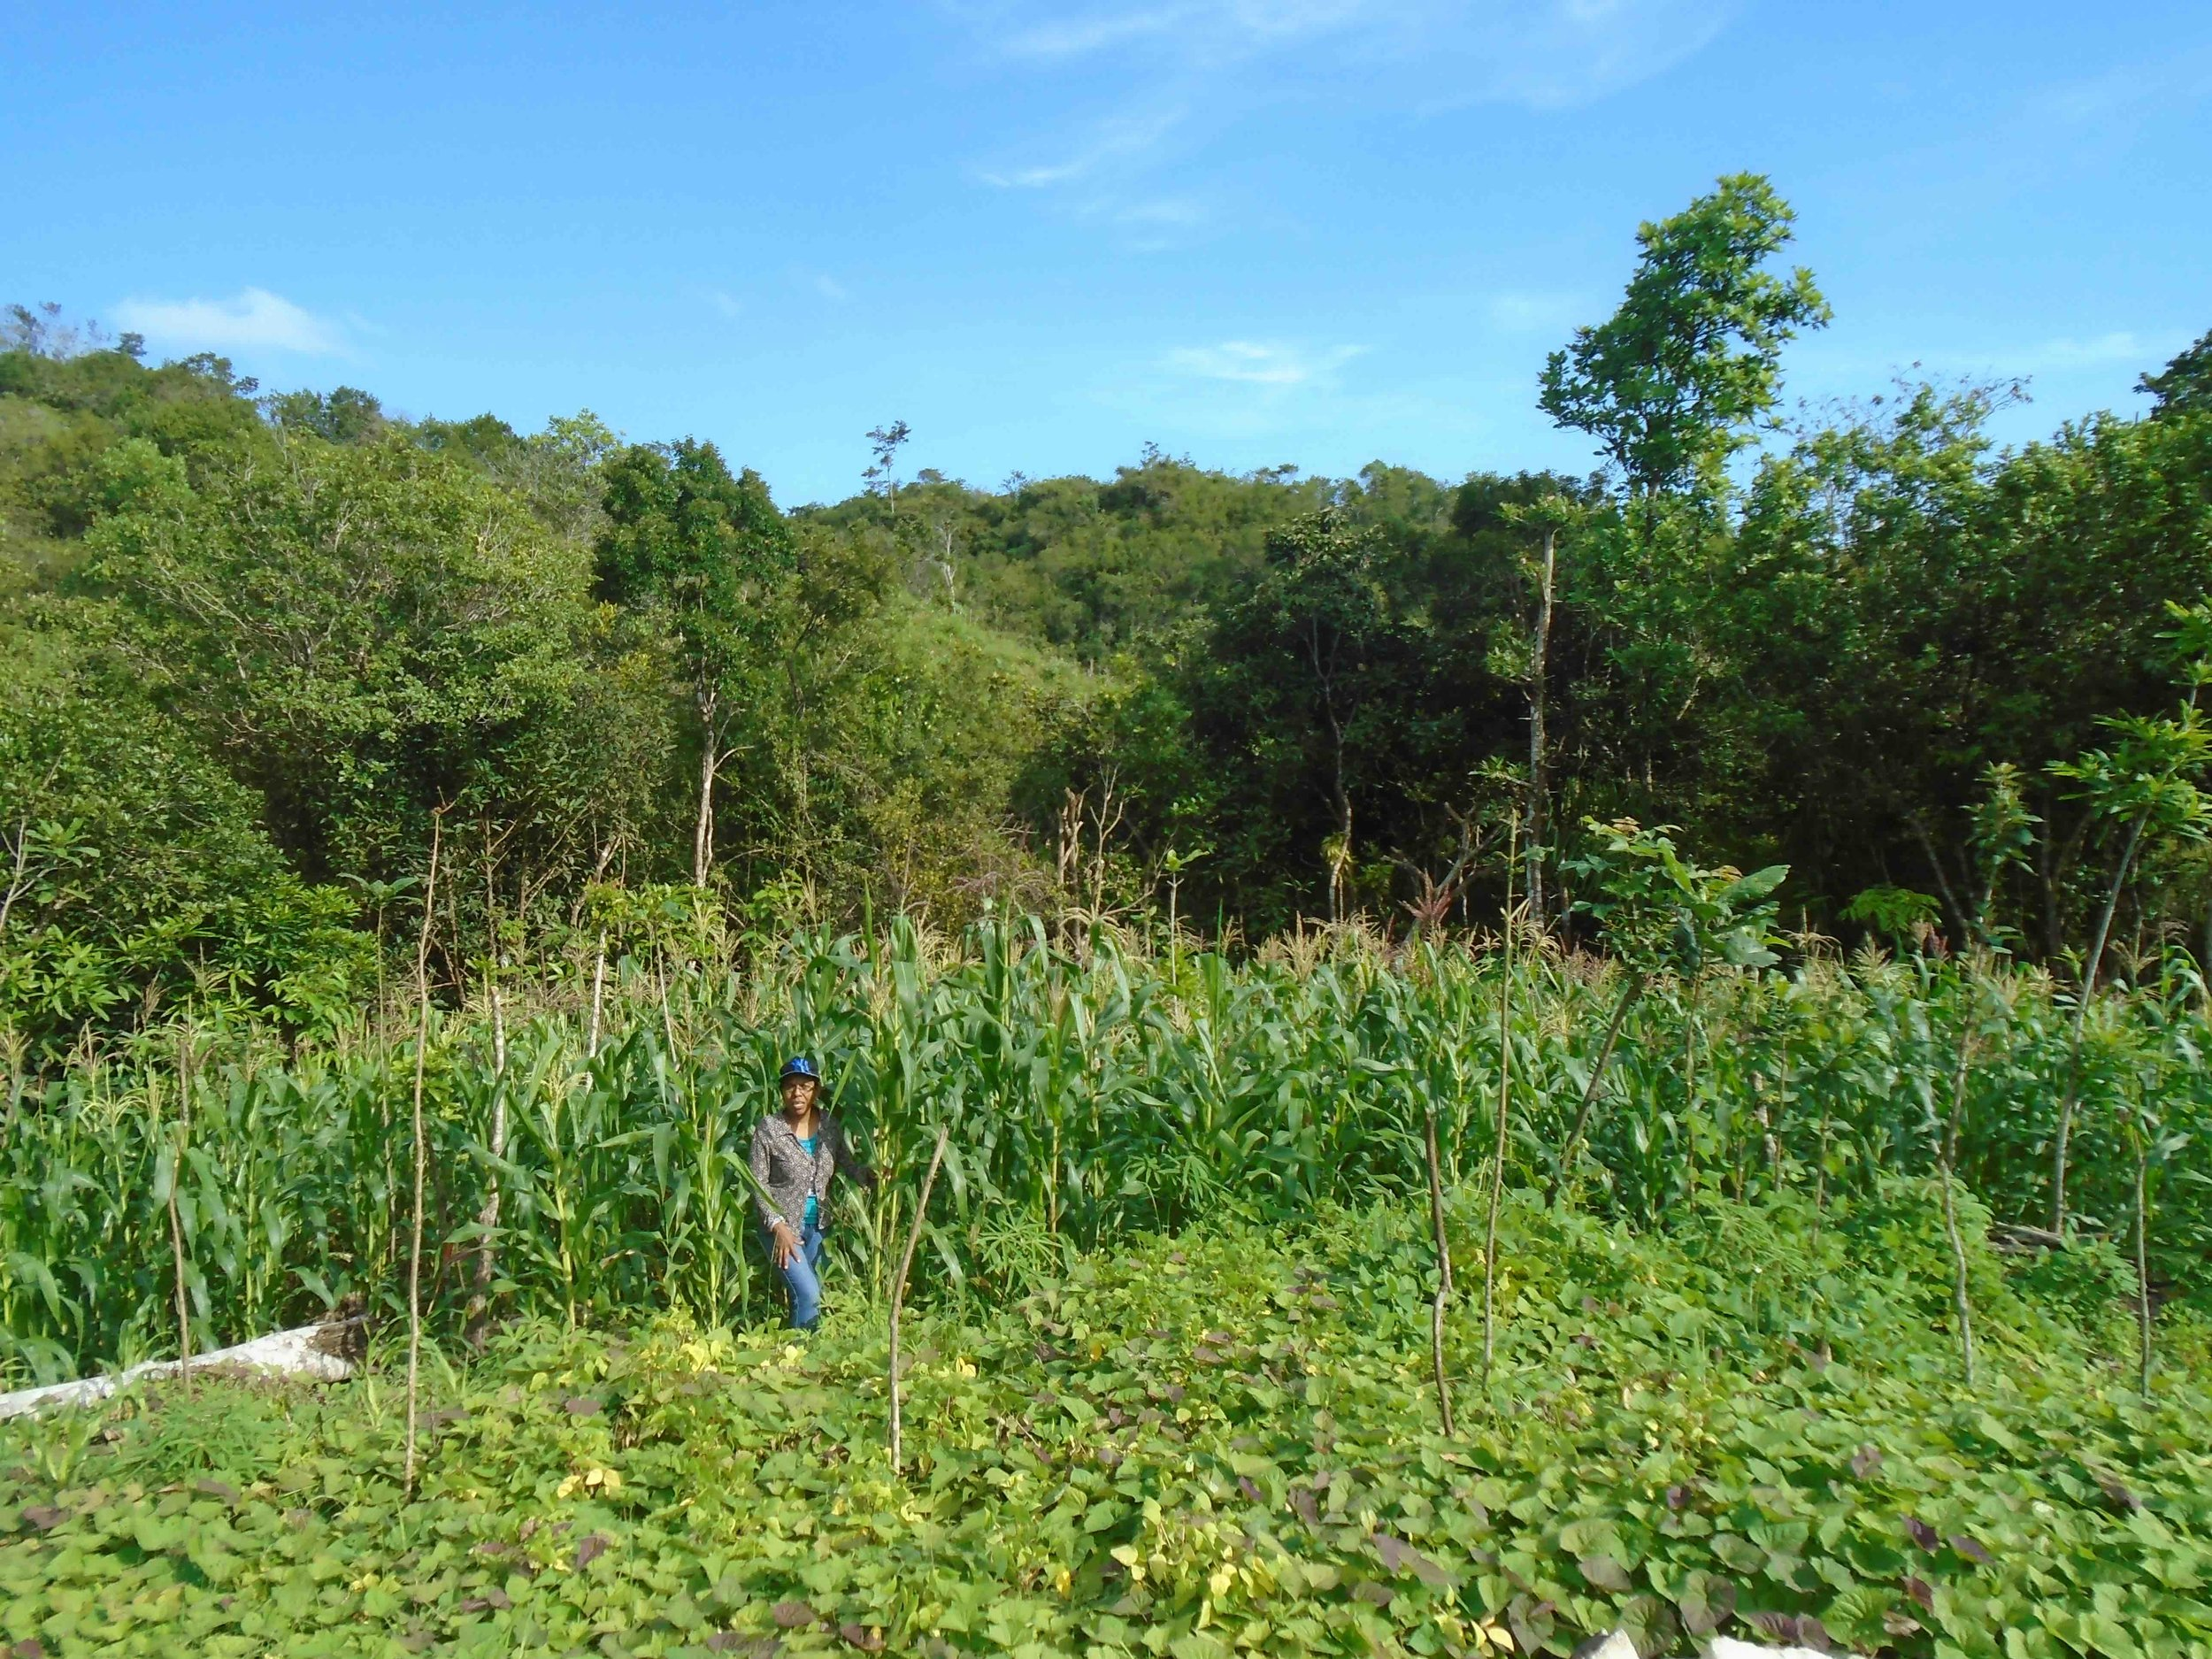 Nancy stands in a field of organically-grown corn and yams. - photo by Dayra Julio